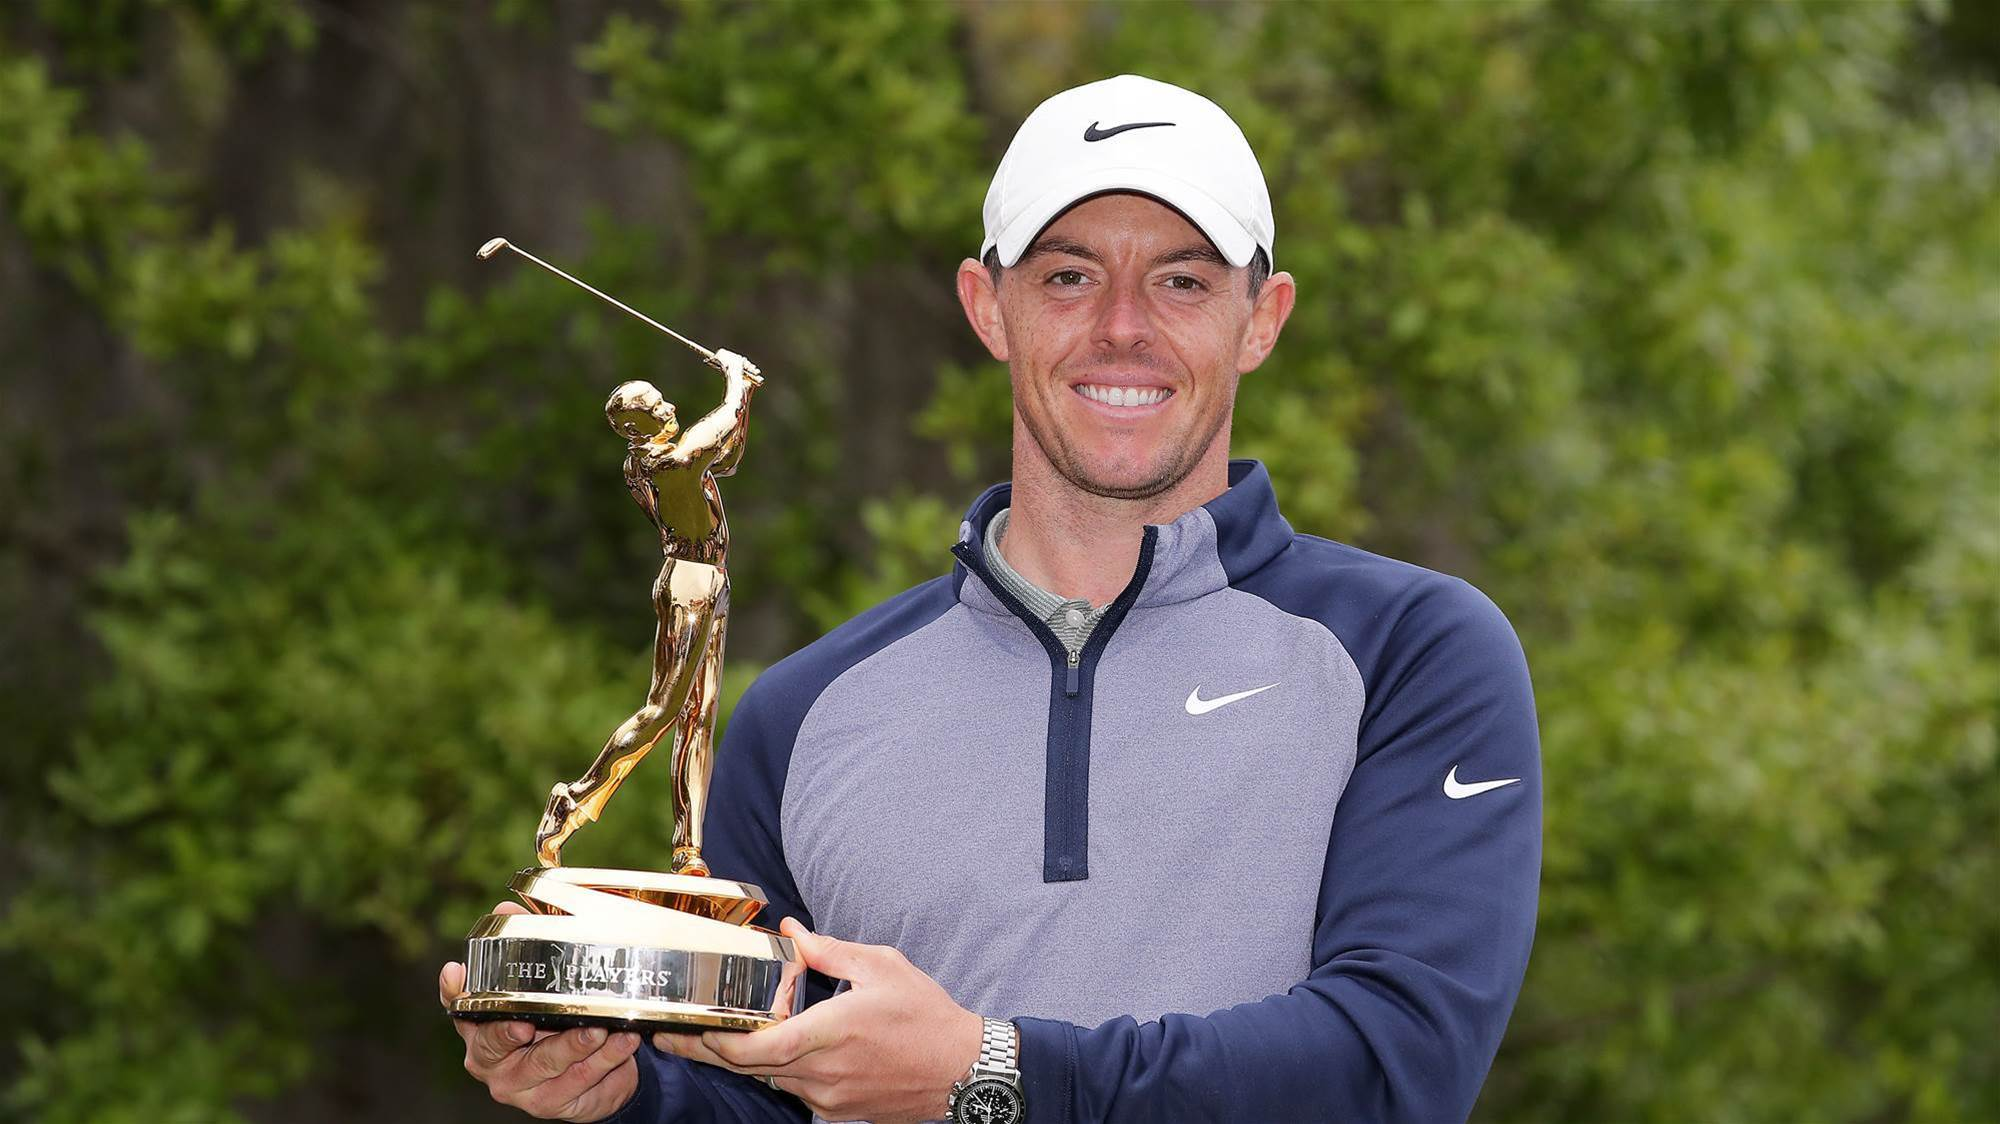 New Masters favourite McIlroy wins The Players